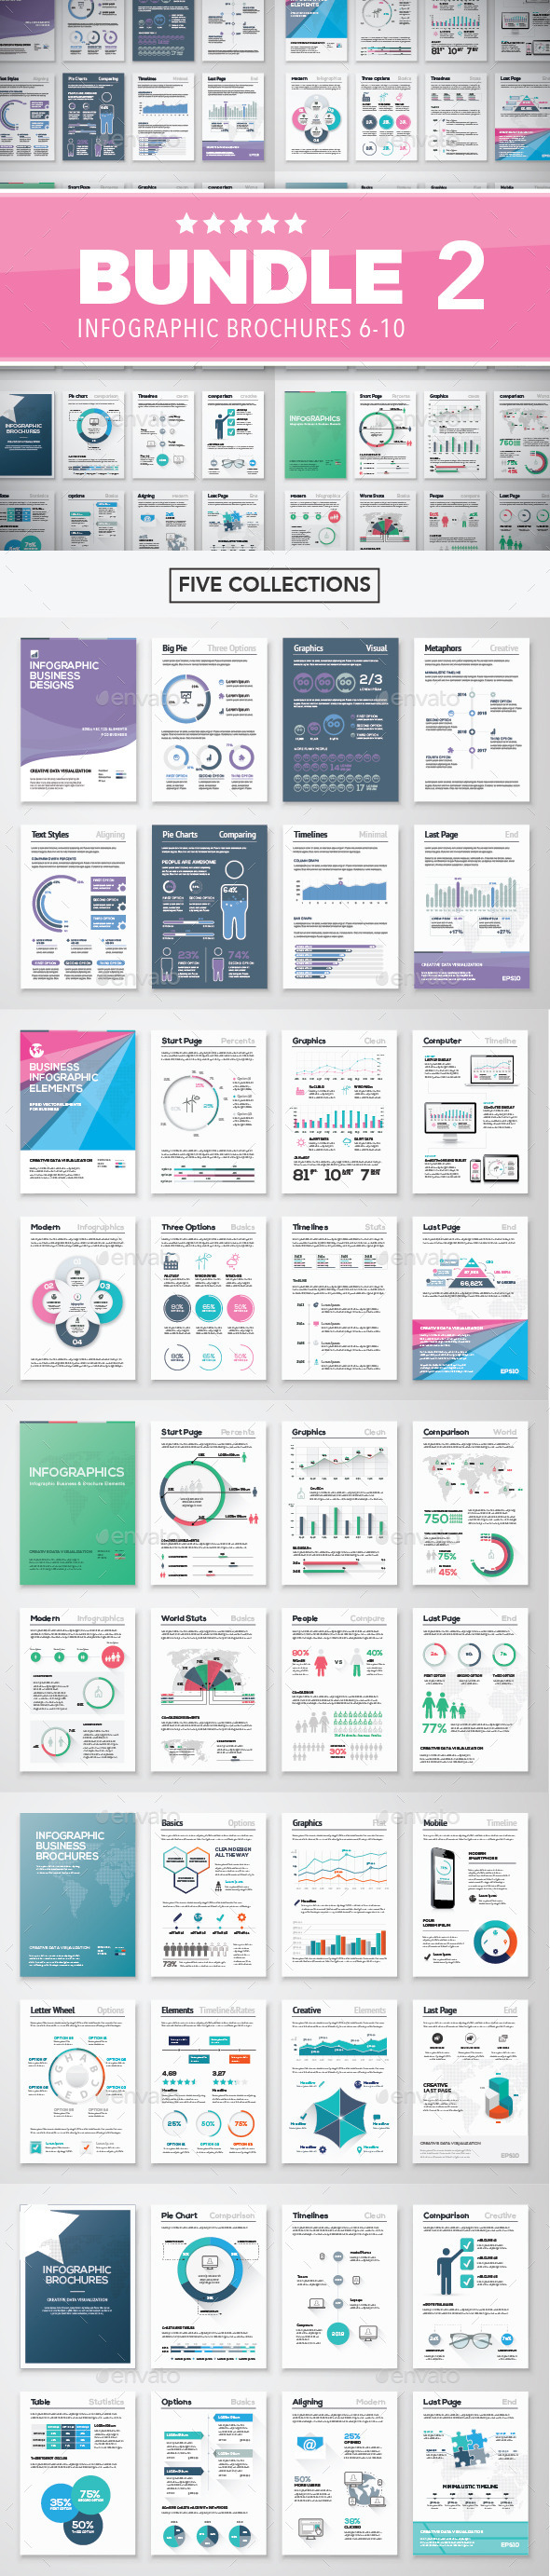 Infographic Brochure Elements Bundle 2